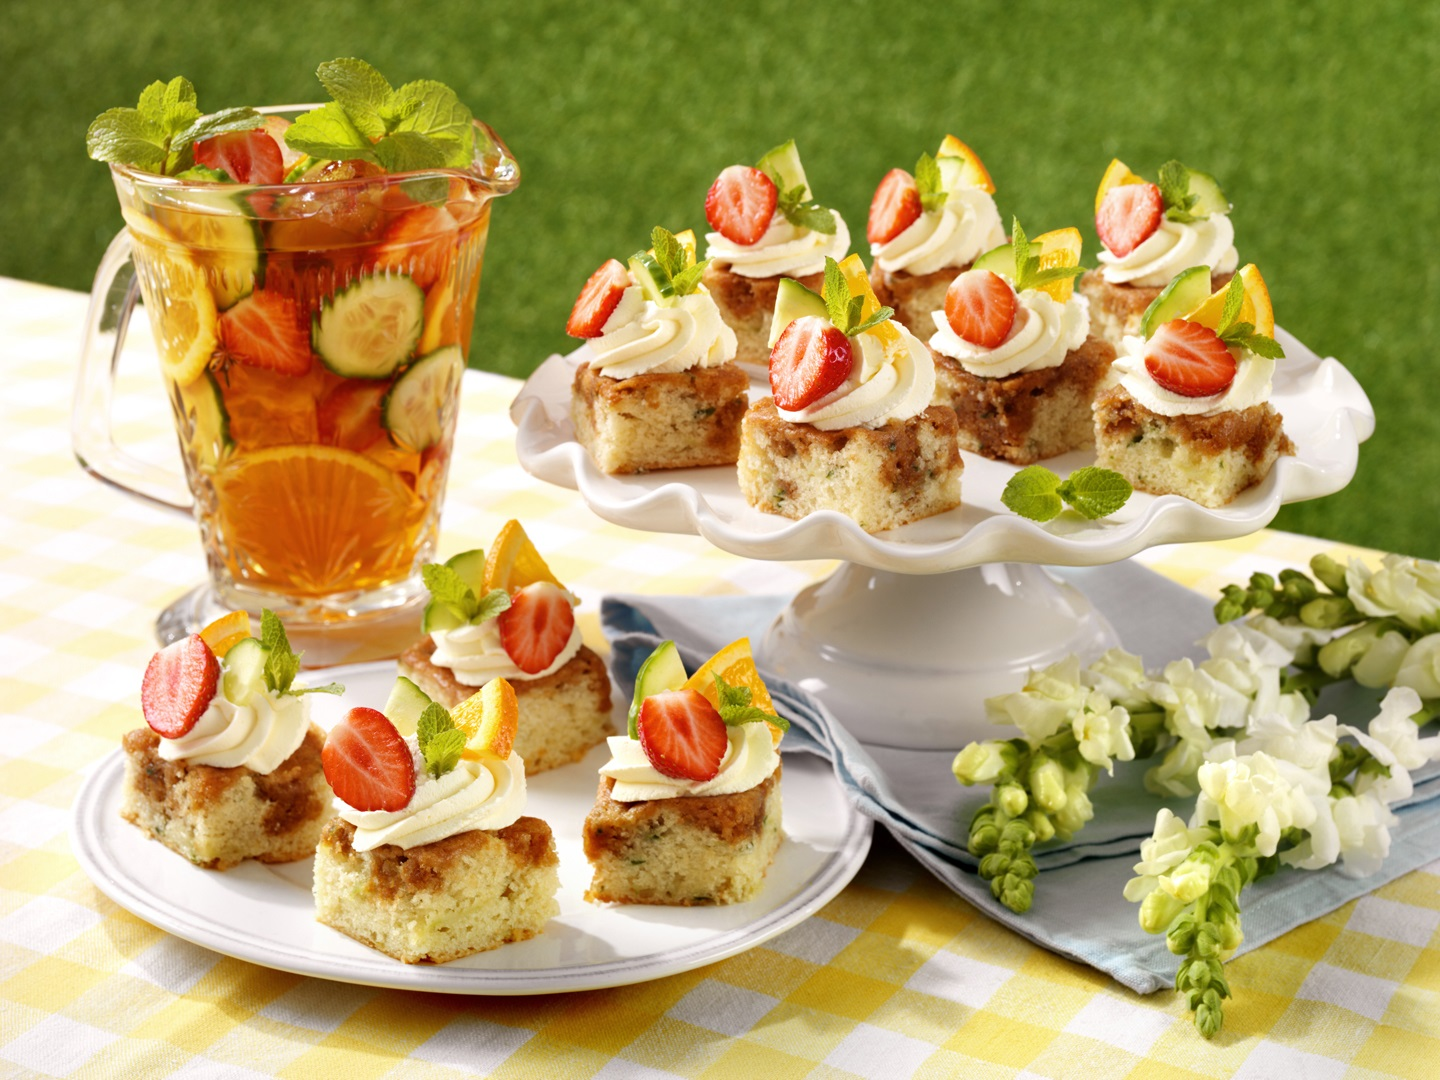 Pimms Cakes For The Queen's Birthday Party?